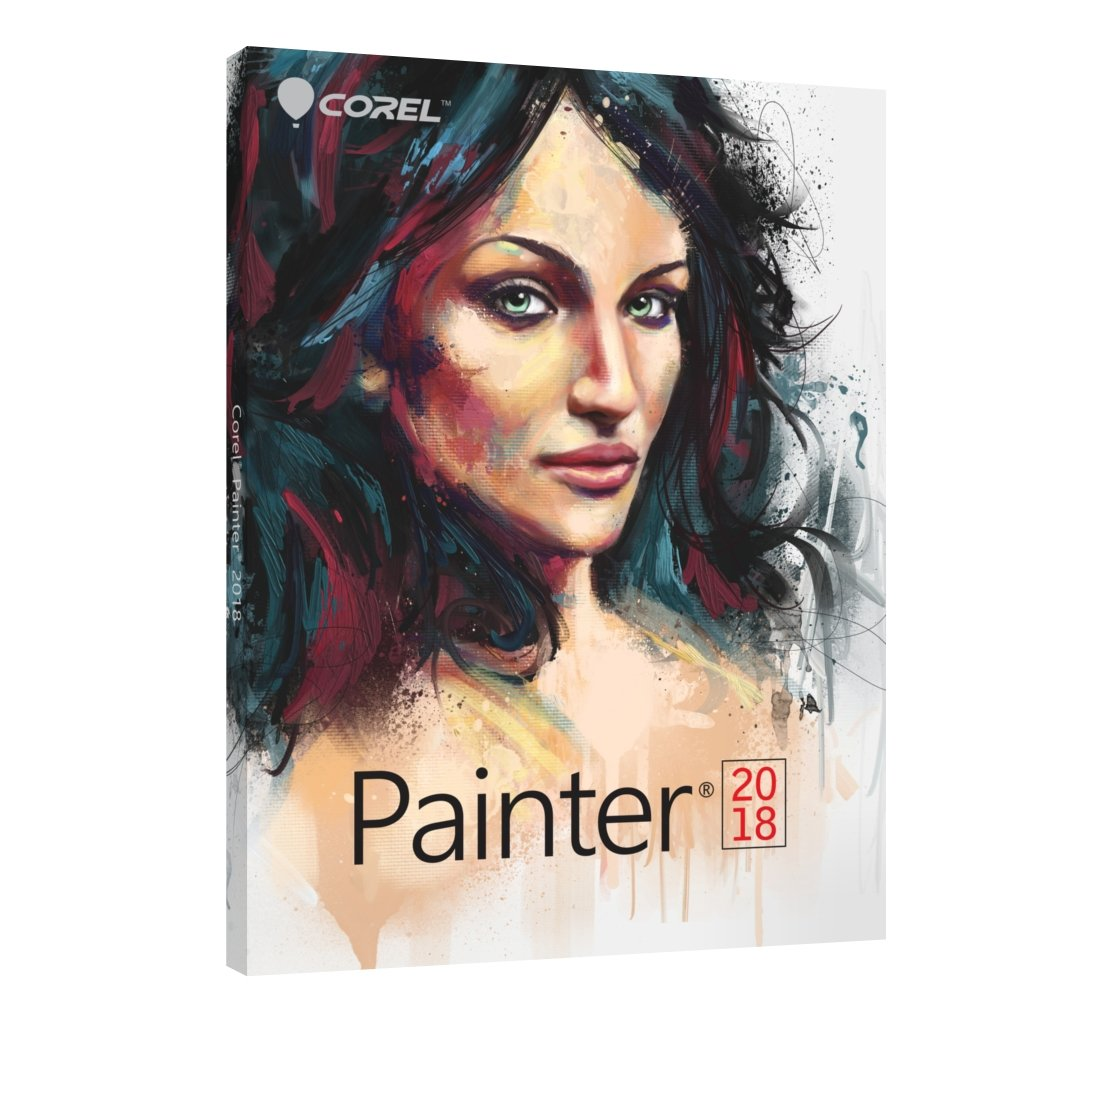 Corel Painter 2018 Digital Art Suite for PC and Mac